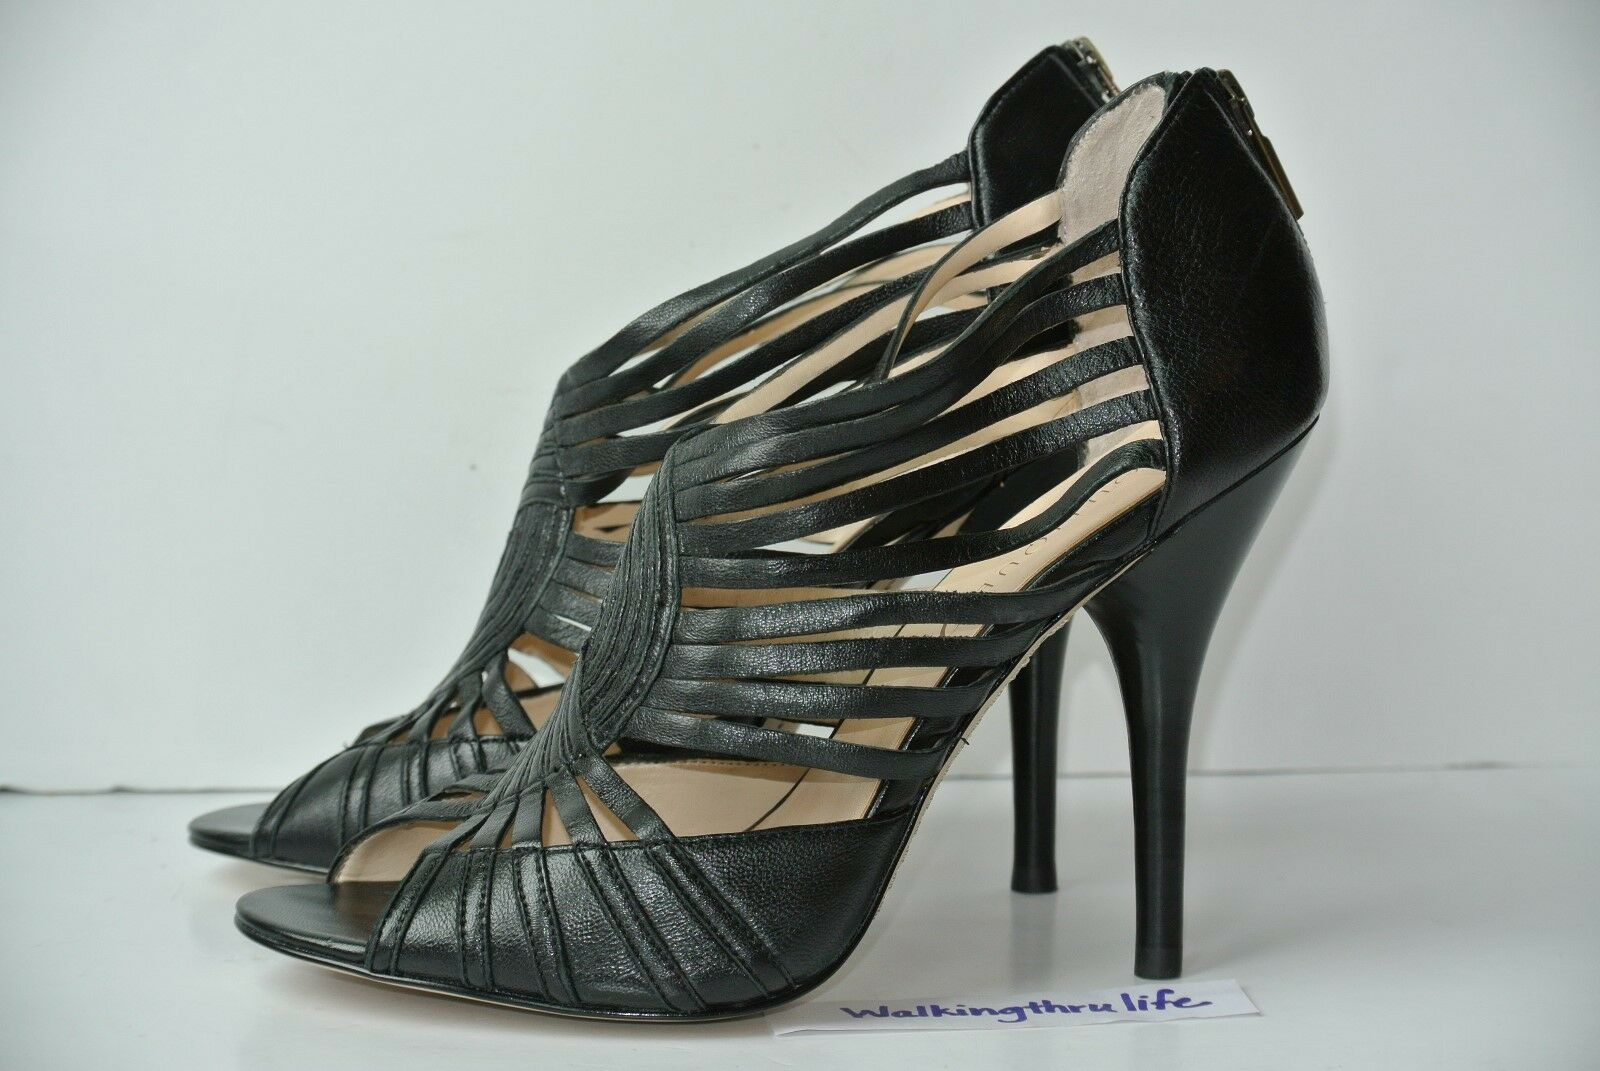 Boutique 9 9 Jayleen Womens Sz 9 Boutique M Black Leather Strappy Heels Stiletto NICE!! 3e55ed